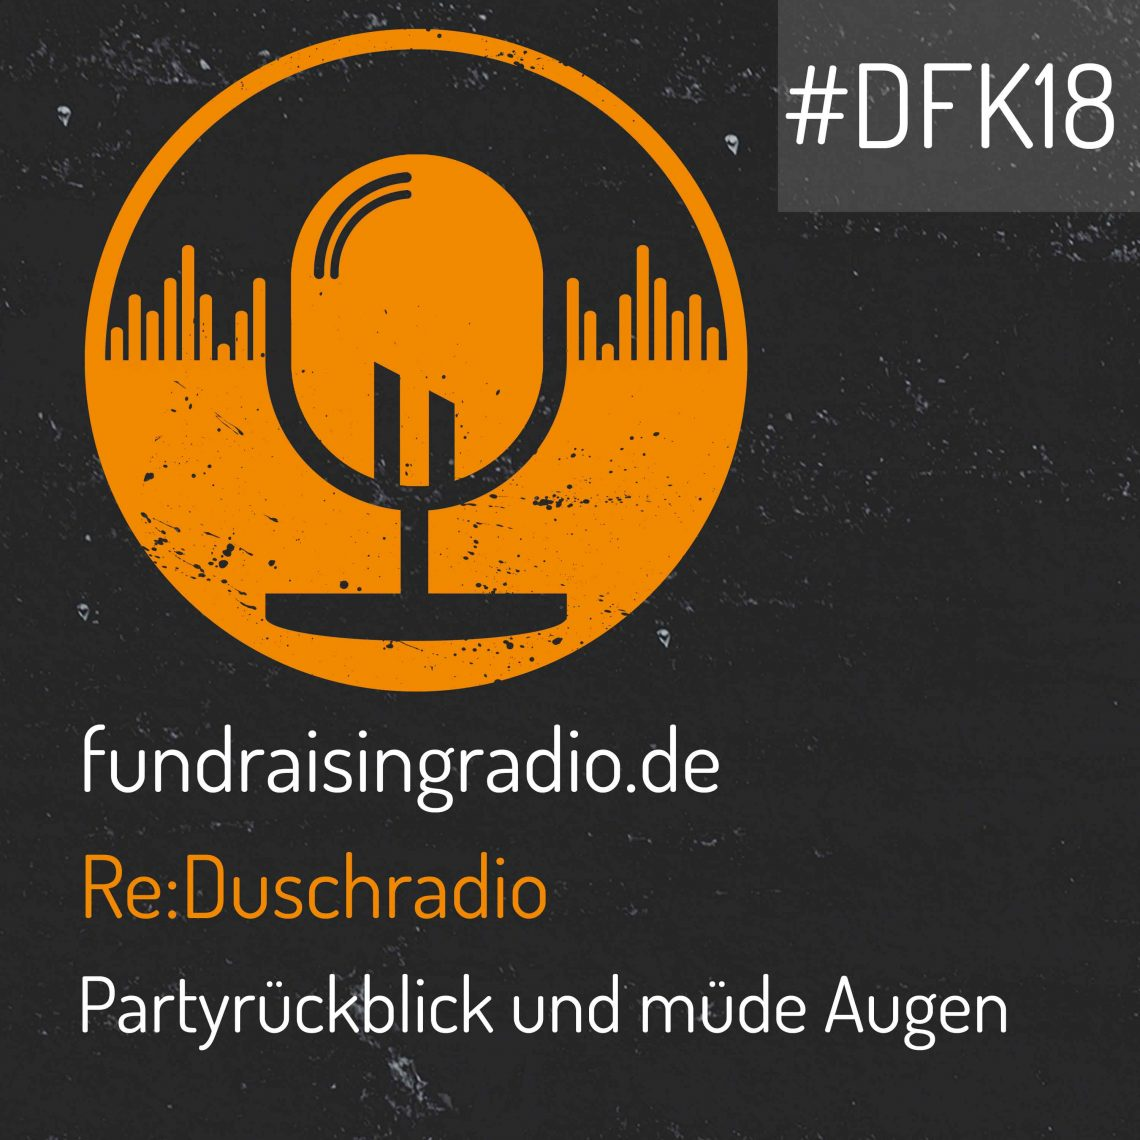 FRR: Re:Duschradio DFK18